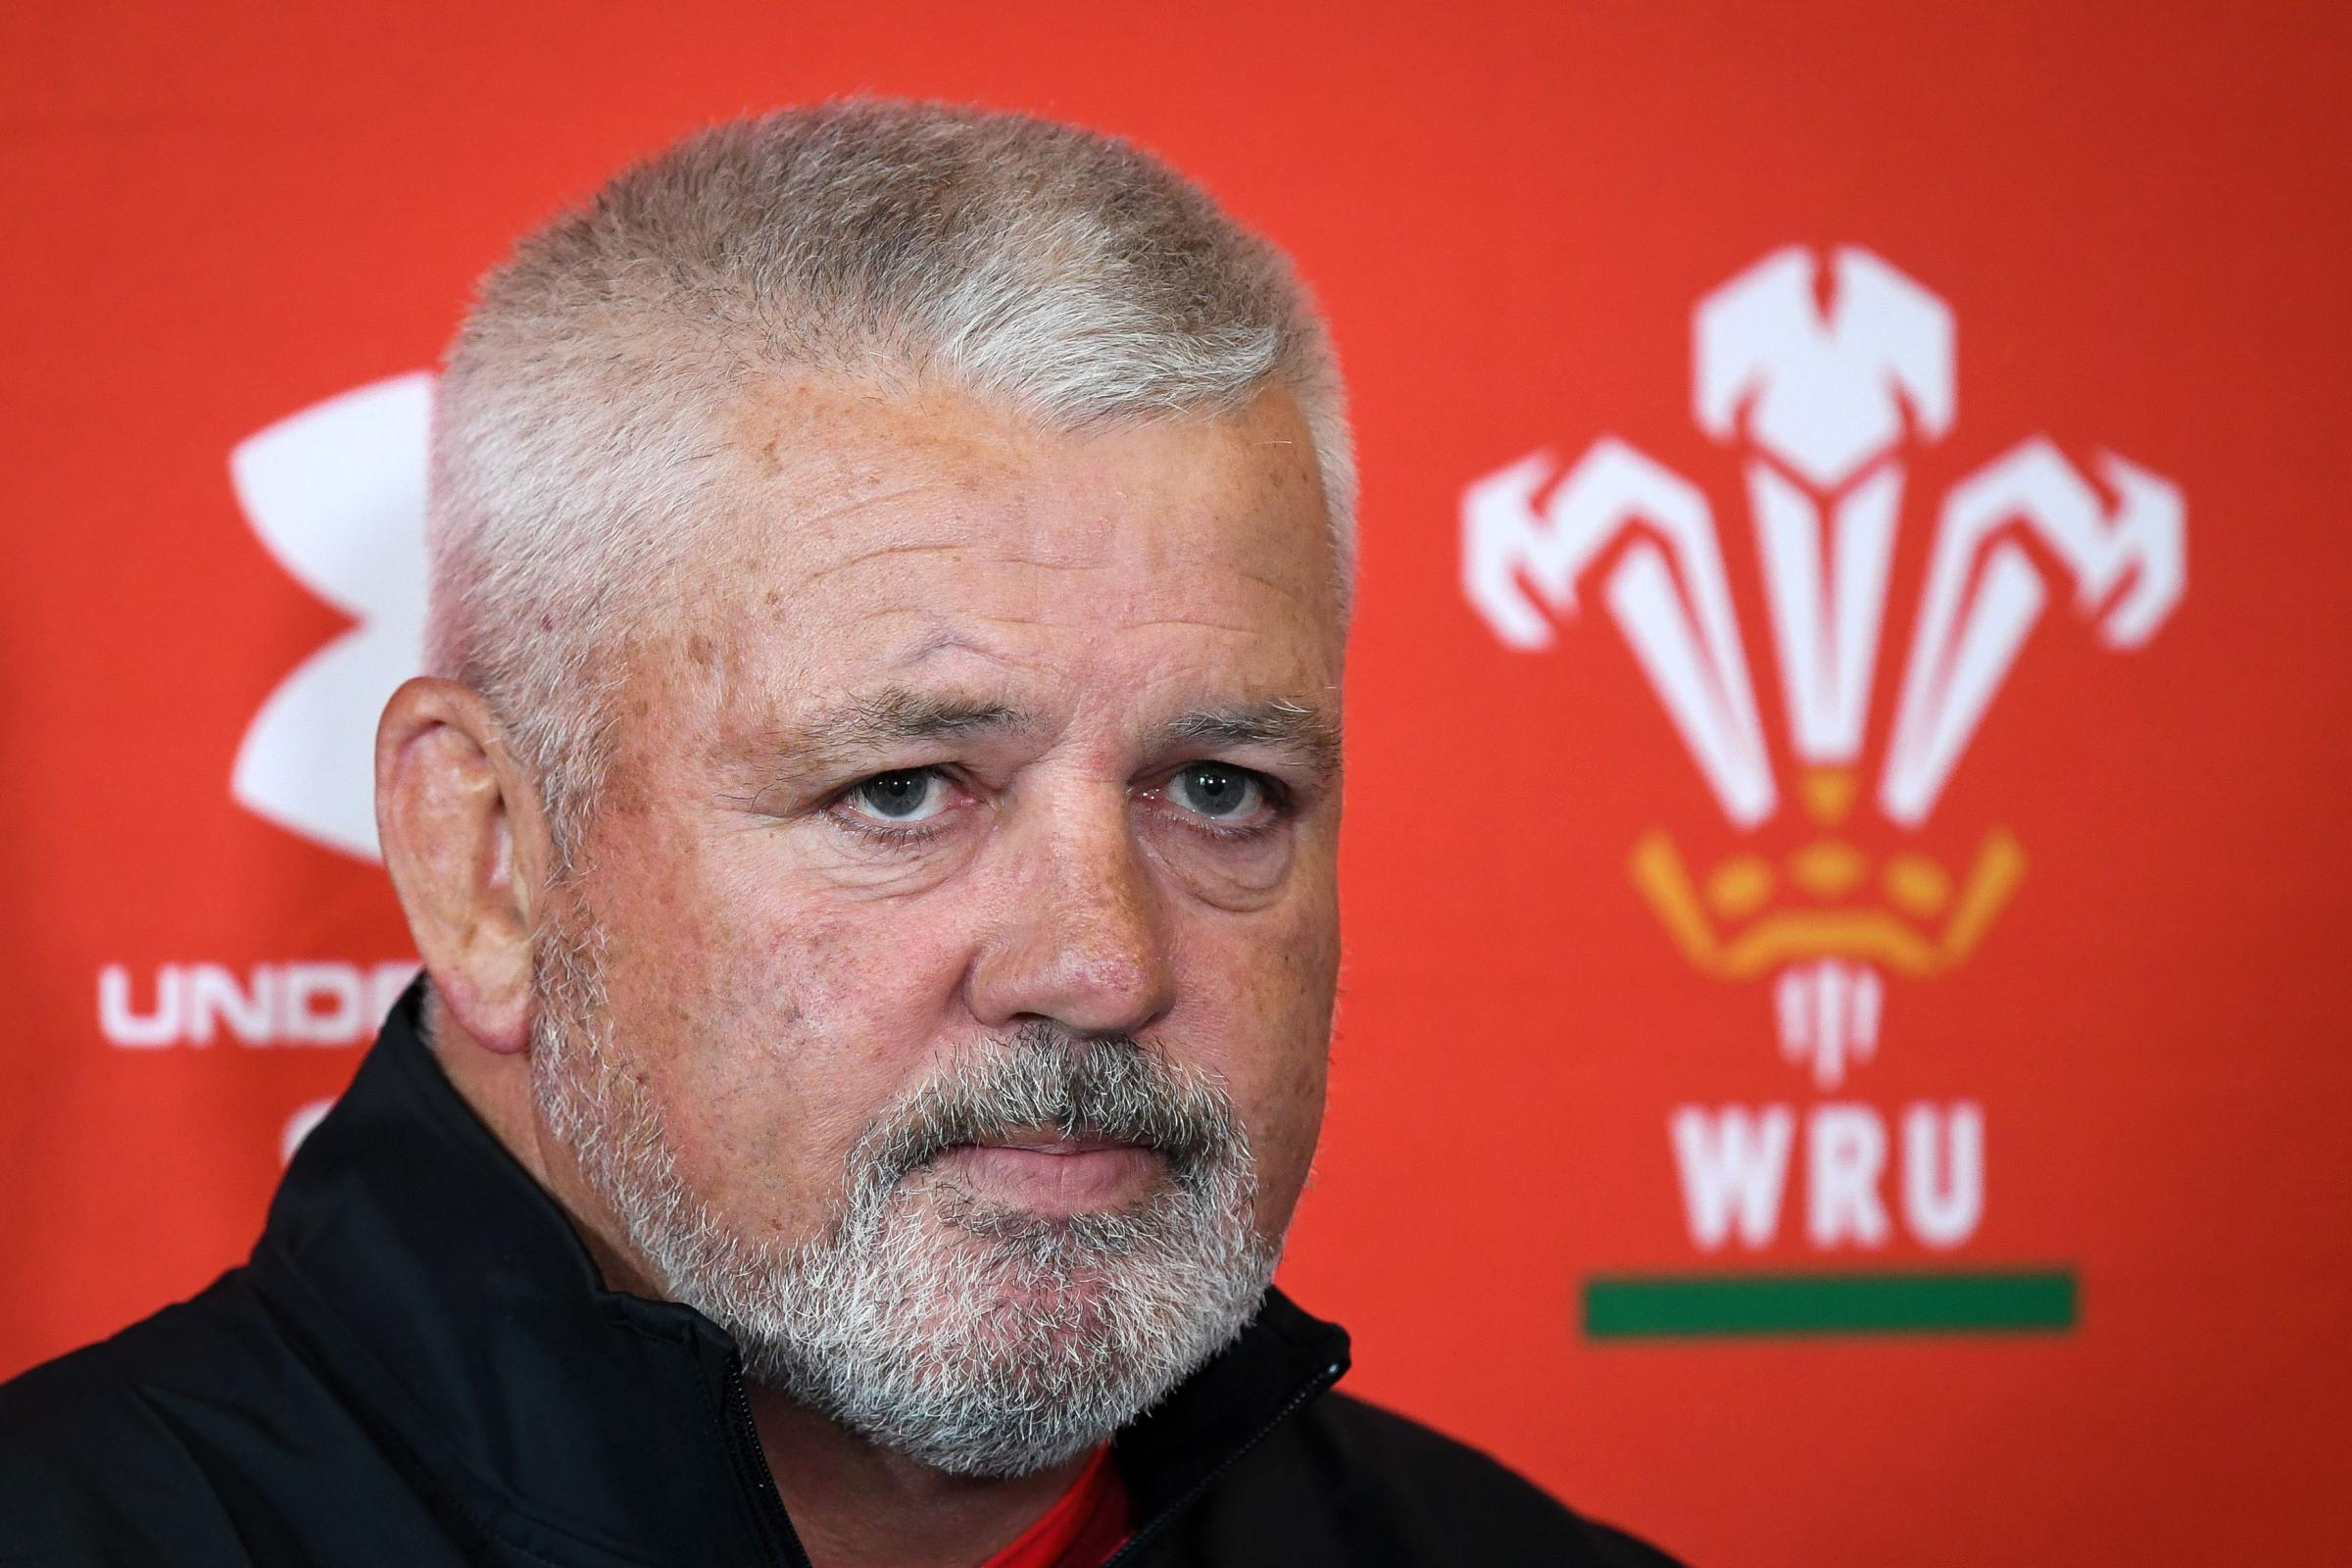 File photo dated 16-01-2018 of Wales' Head coach Warren Gatland. PRESS ASSOCIATION Photo. Issue date: Thursday January 25, 2018. It will be fascinating to see if head coach Warren Gatland's two uncapped selections - Worcester wing Josh Adams and S